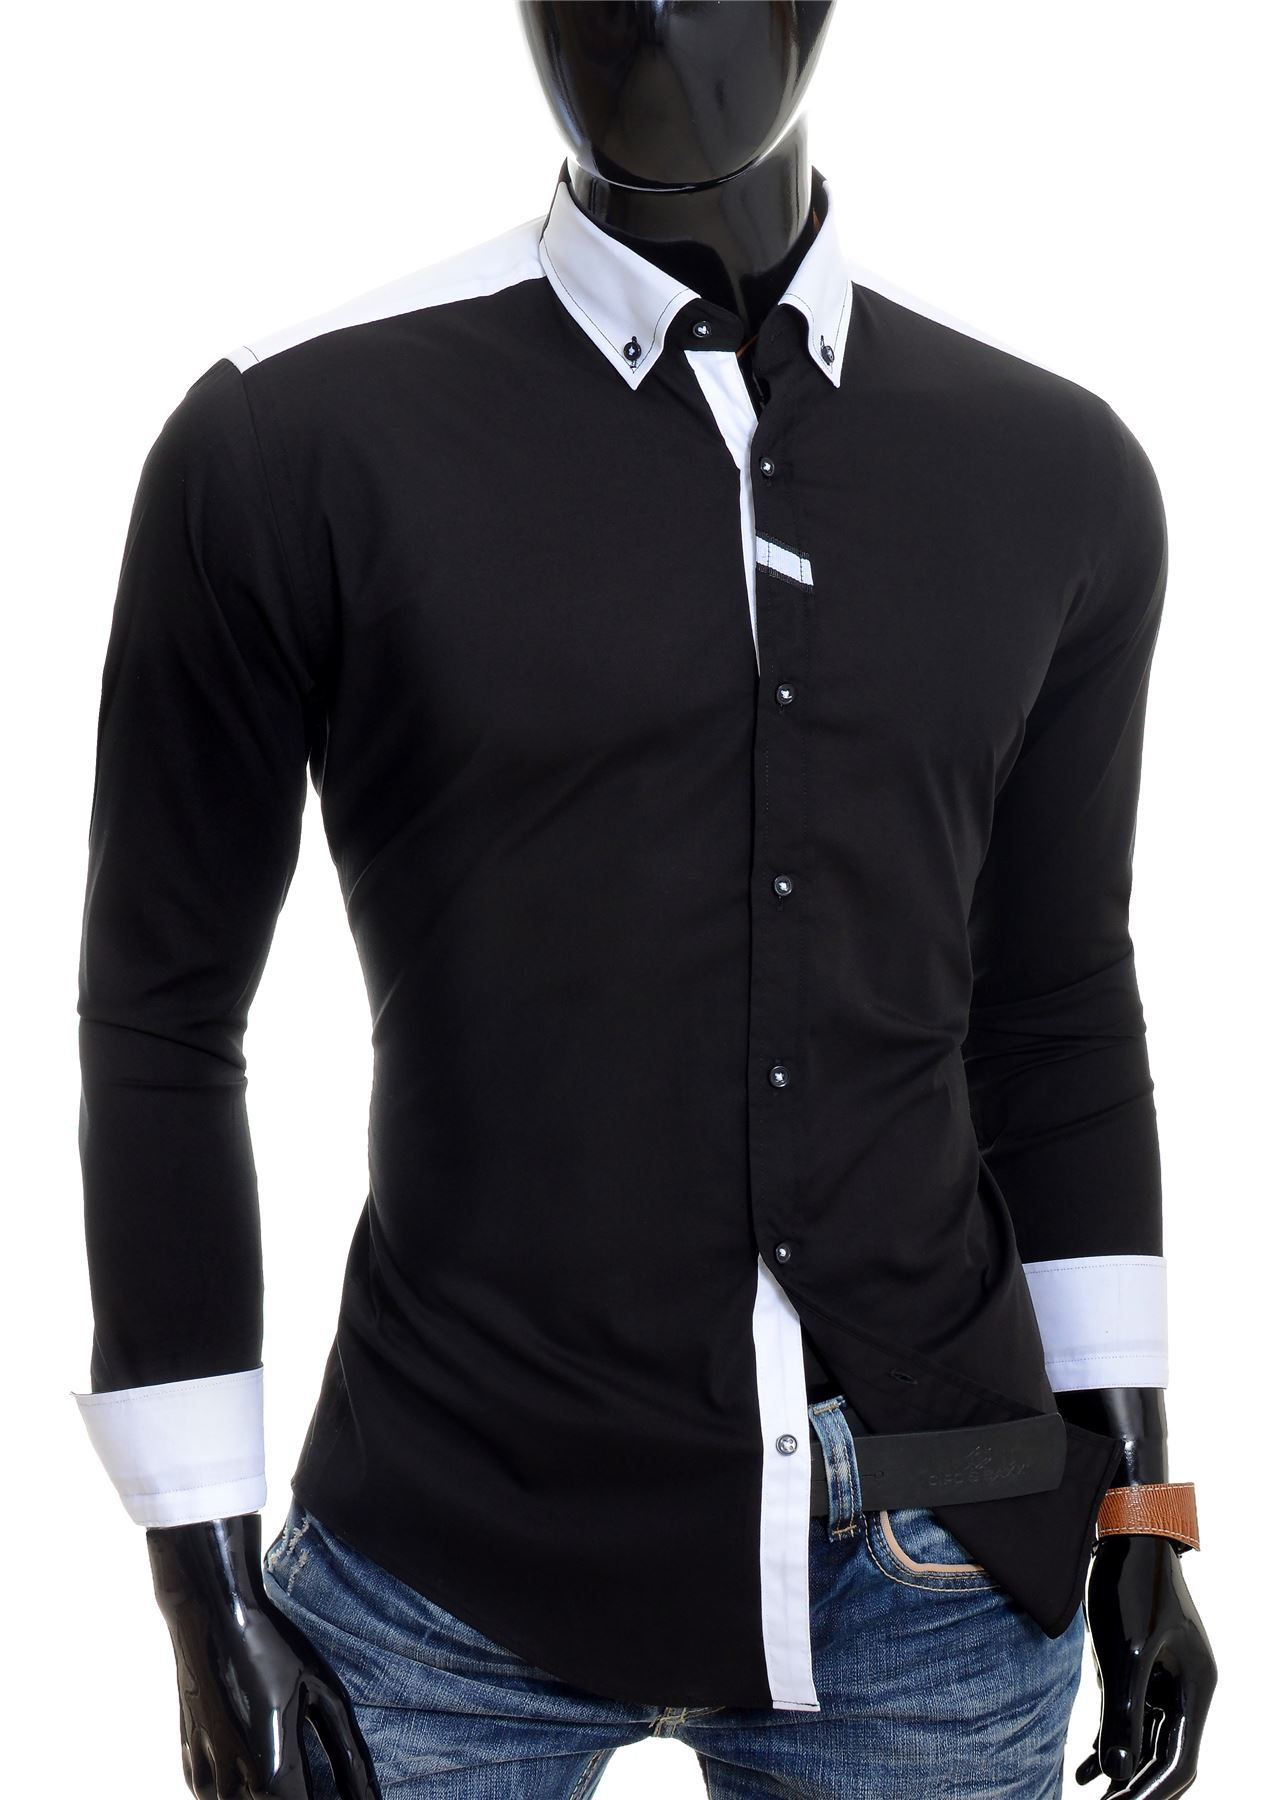 Cipo-amp-Baxx-Designer-Men-039-s-Elegant-Shirt-White-Black-Cotton-Slim-Contrast-Cuffs thumbnail 6